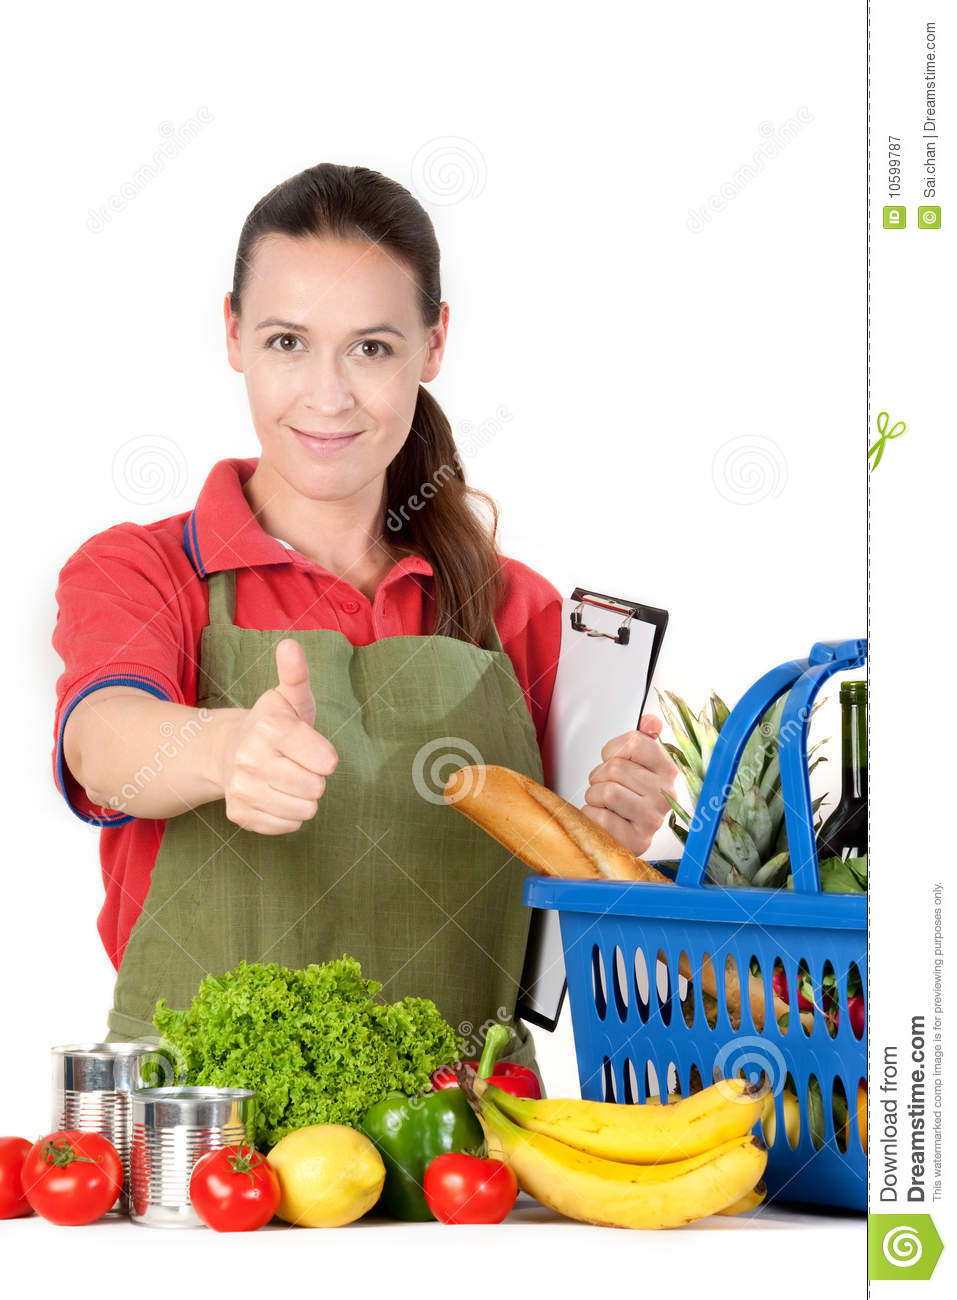 Royalty Free Stock Photography Friendly Grocery Store Assistant Image 10599787